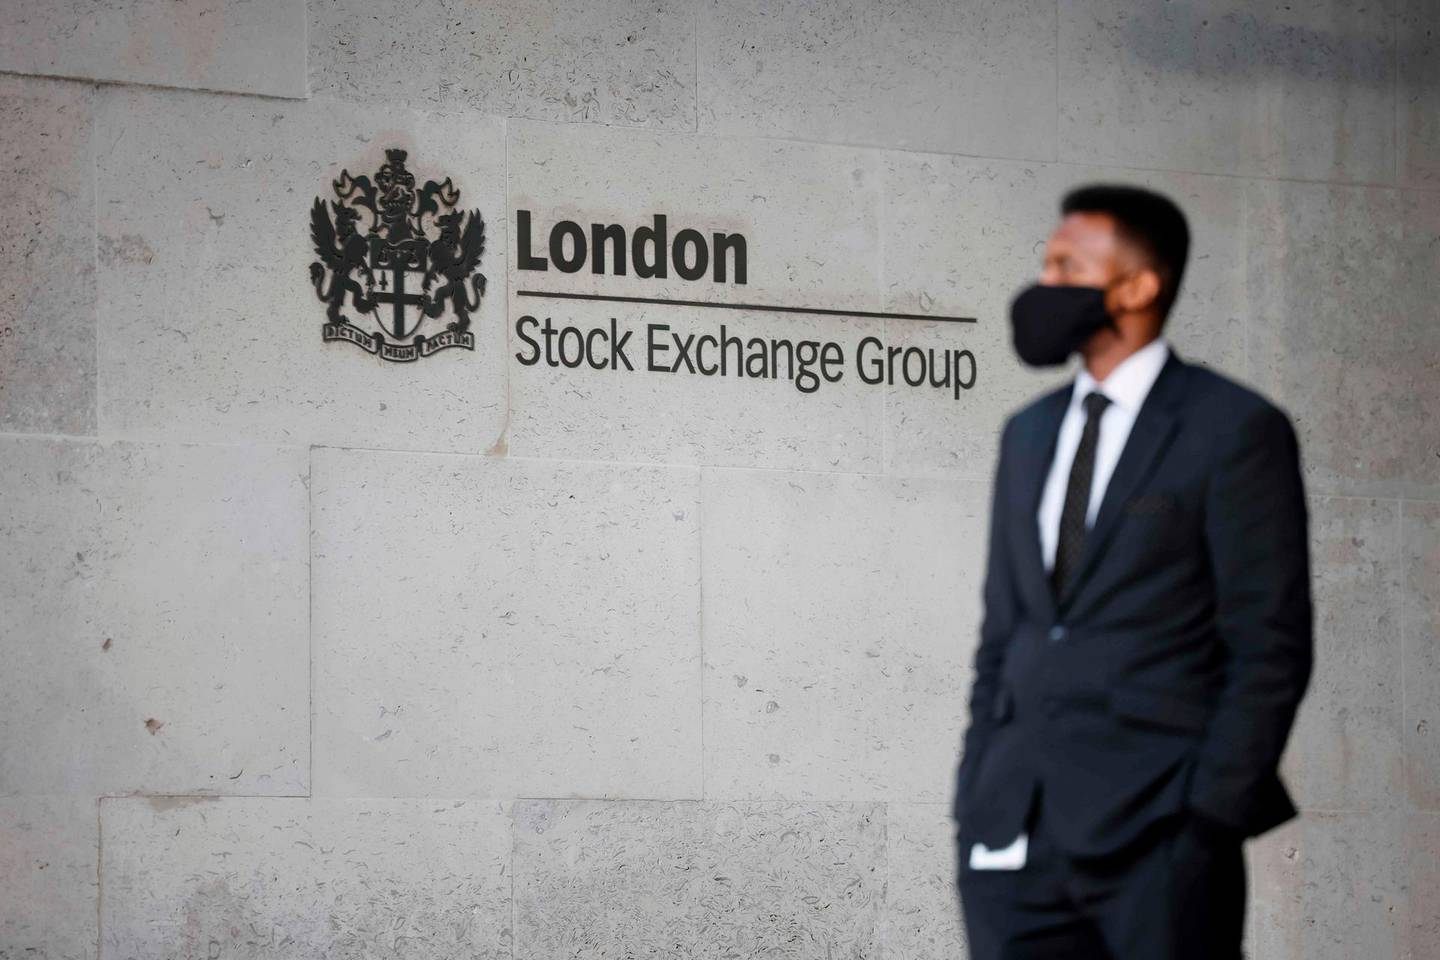 A security guard stands beside the logo for the London Stock Exchange Group outside the stock exchange in London on December 29, 2020. The London stock market soared on December 29 as investors gave their initial verdict on Britain's Brexit deal with the EU, while eurozone equities also rose on upbeat US stimulus news, with Frankfurt extending its record breaking run. / AFP / Tolga Akmen